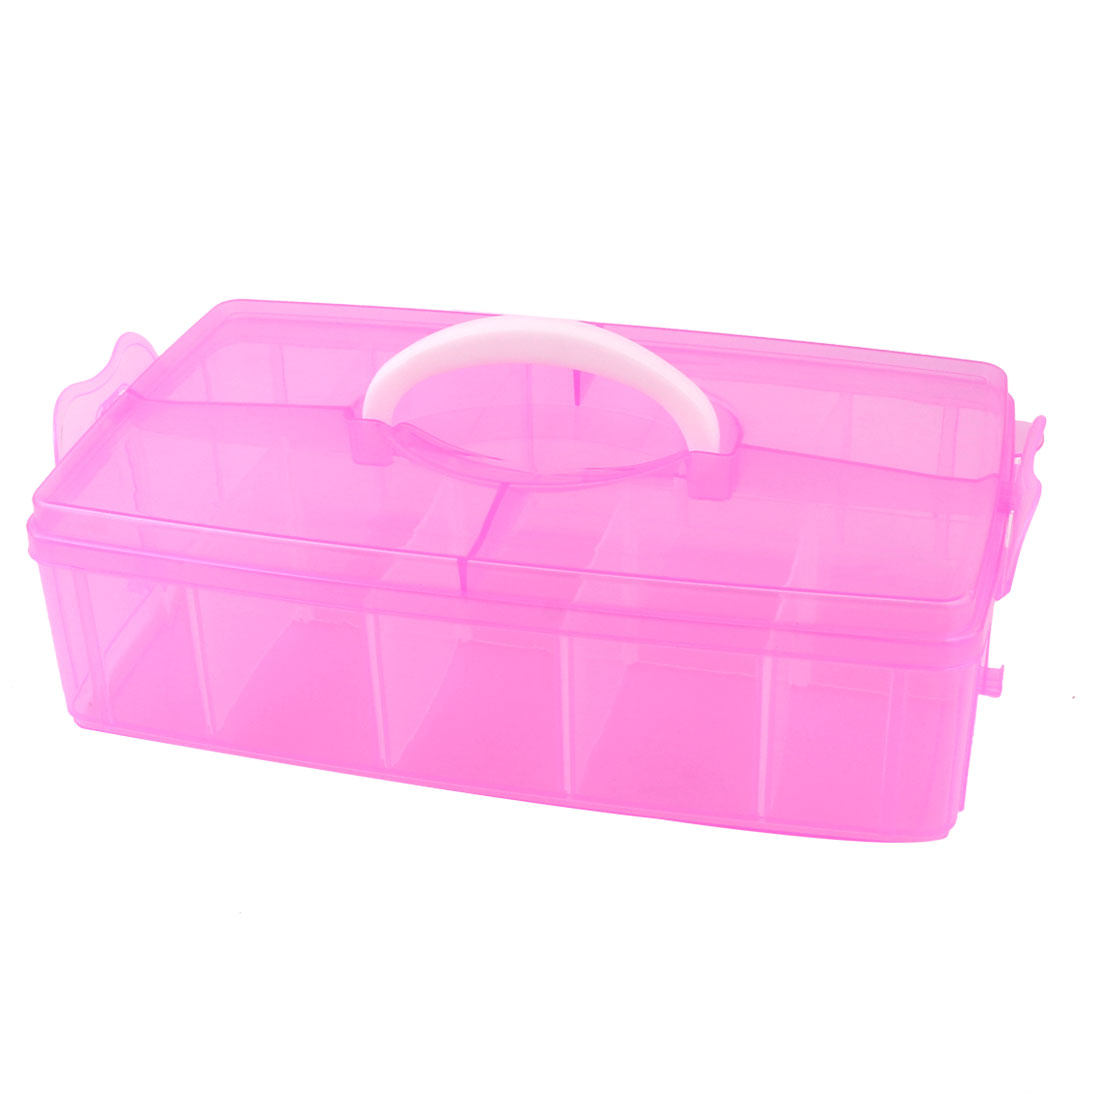 Fuchsia Plastic 10 Detachable Compartments Hand-held Jewelry Storage Box Case